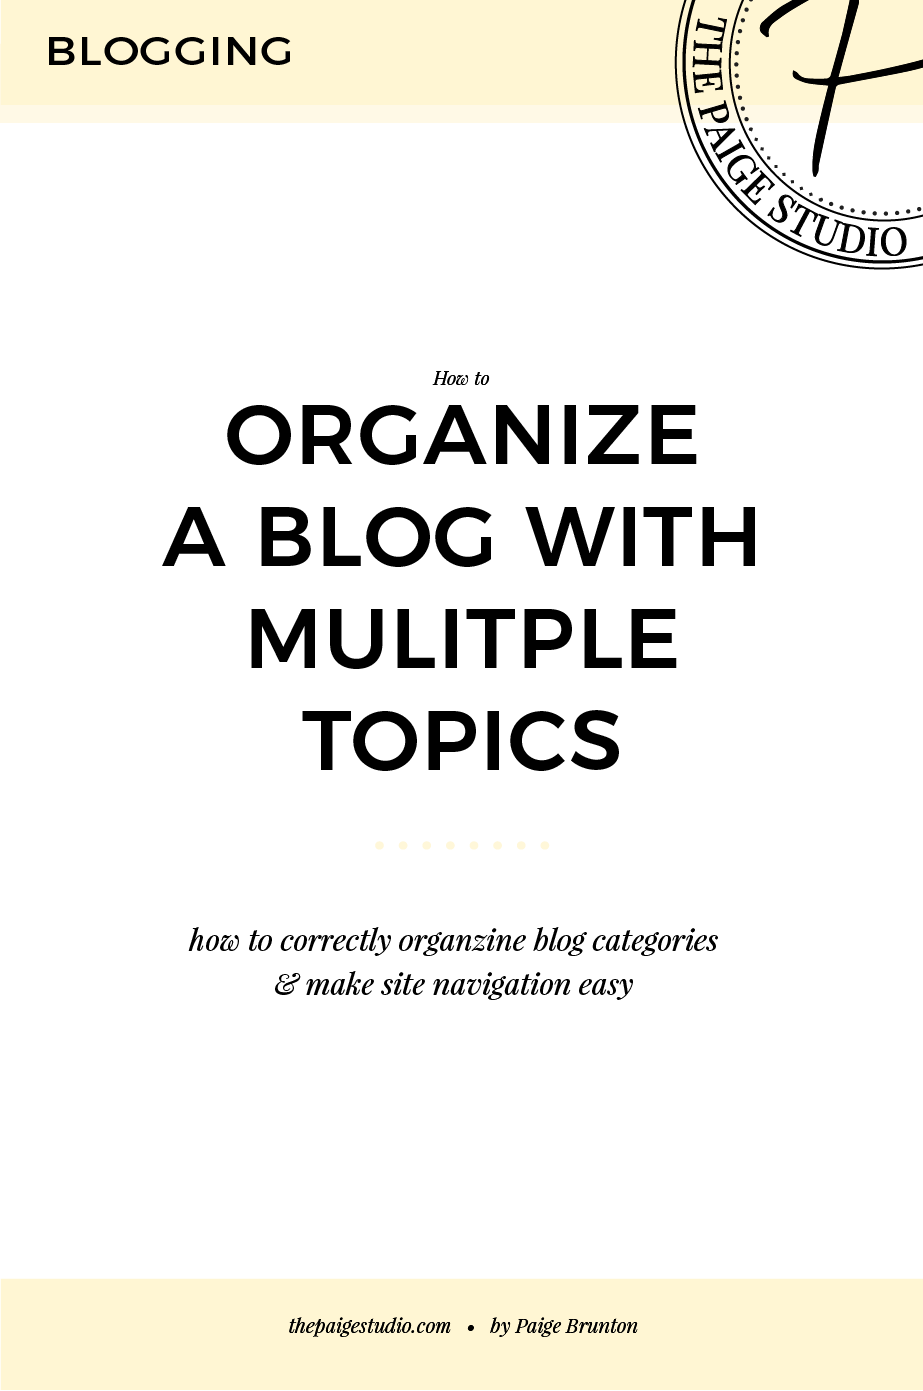 Should I Create 1 Squarespace Blog Or Multiple For Different Topics?